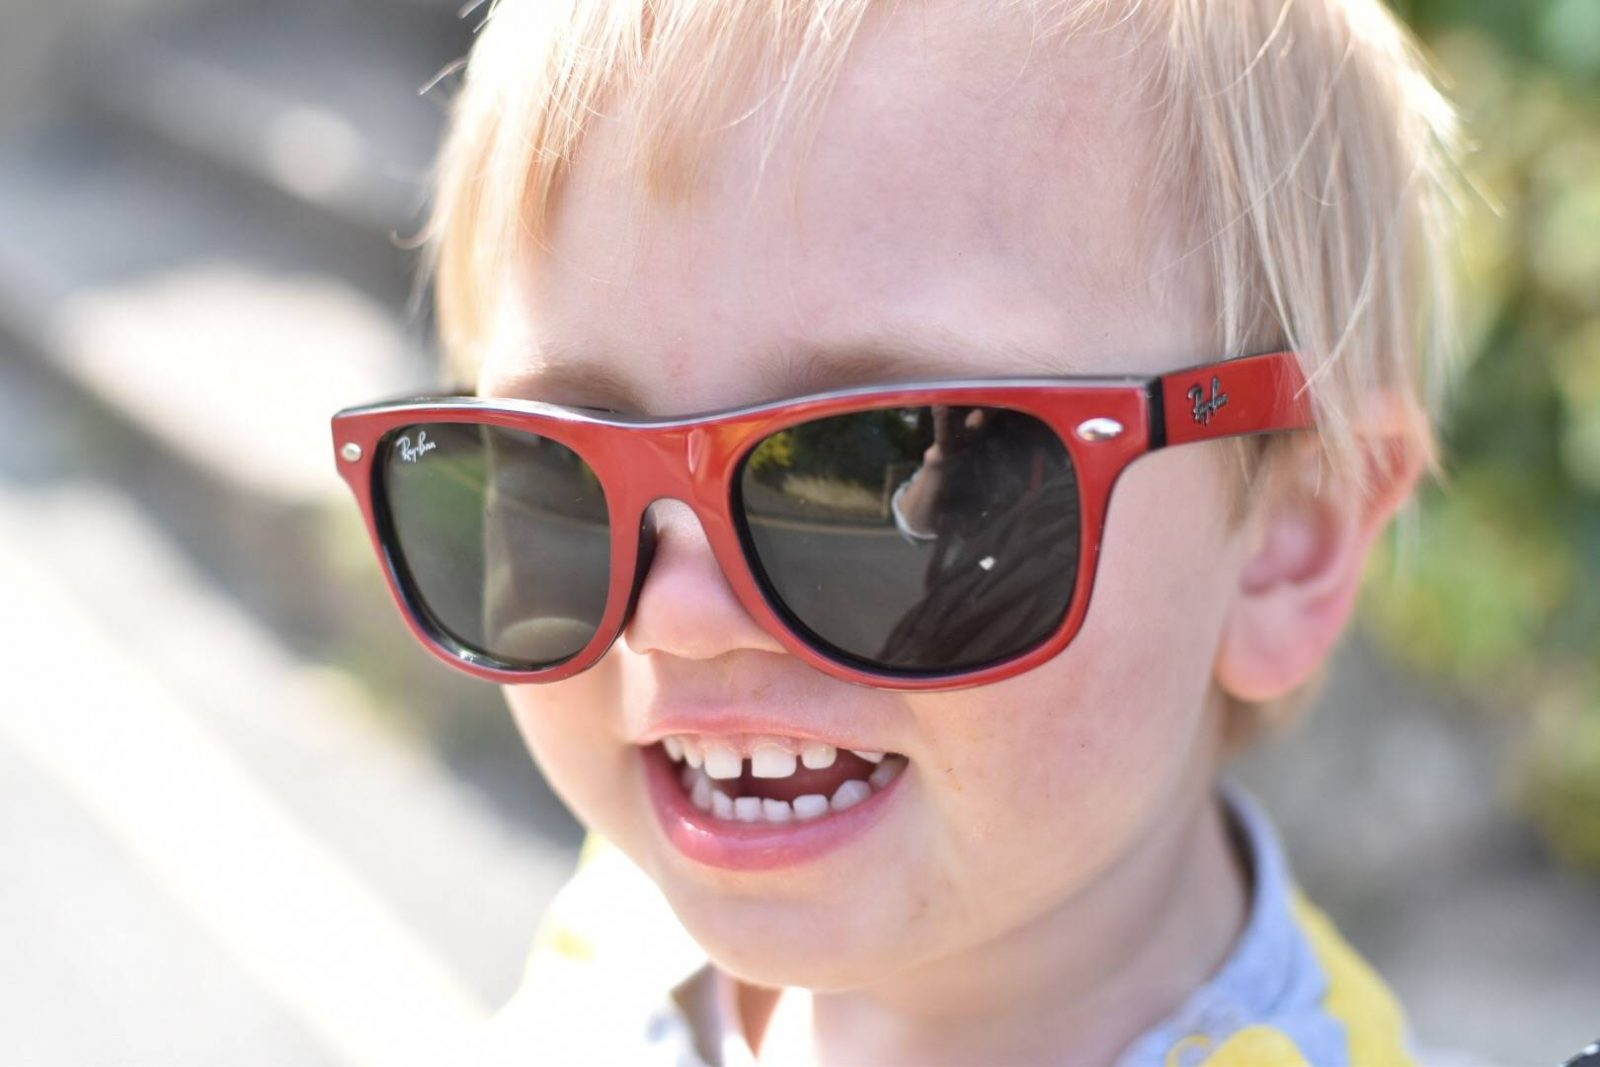 do you encourage your child to wear sunglasses? There's some iterating comments on this post about sun safety